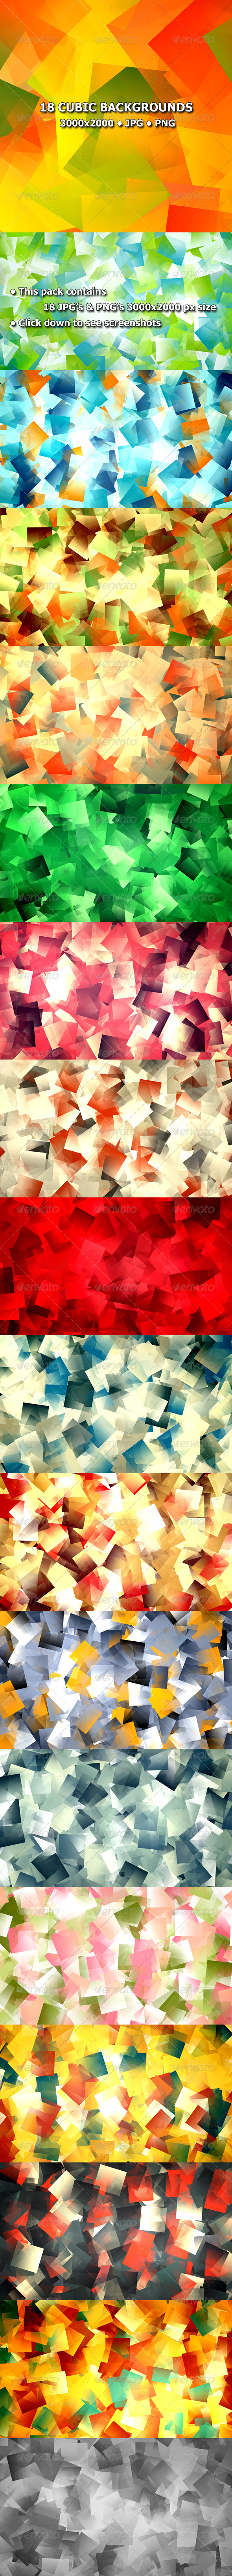 GraphicRiver 18 Cubic Backgrounds 8491102